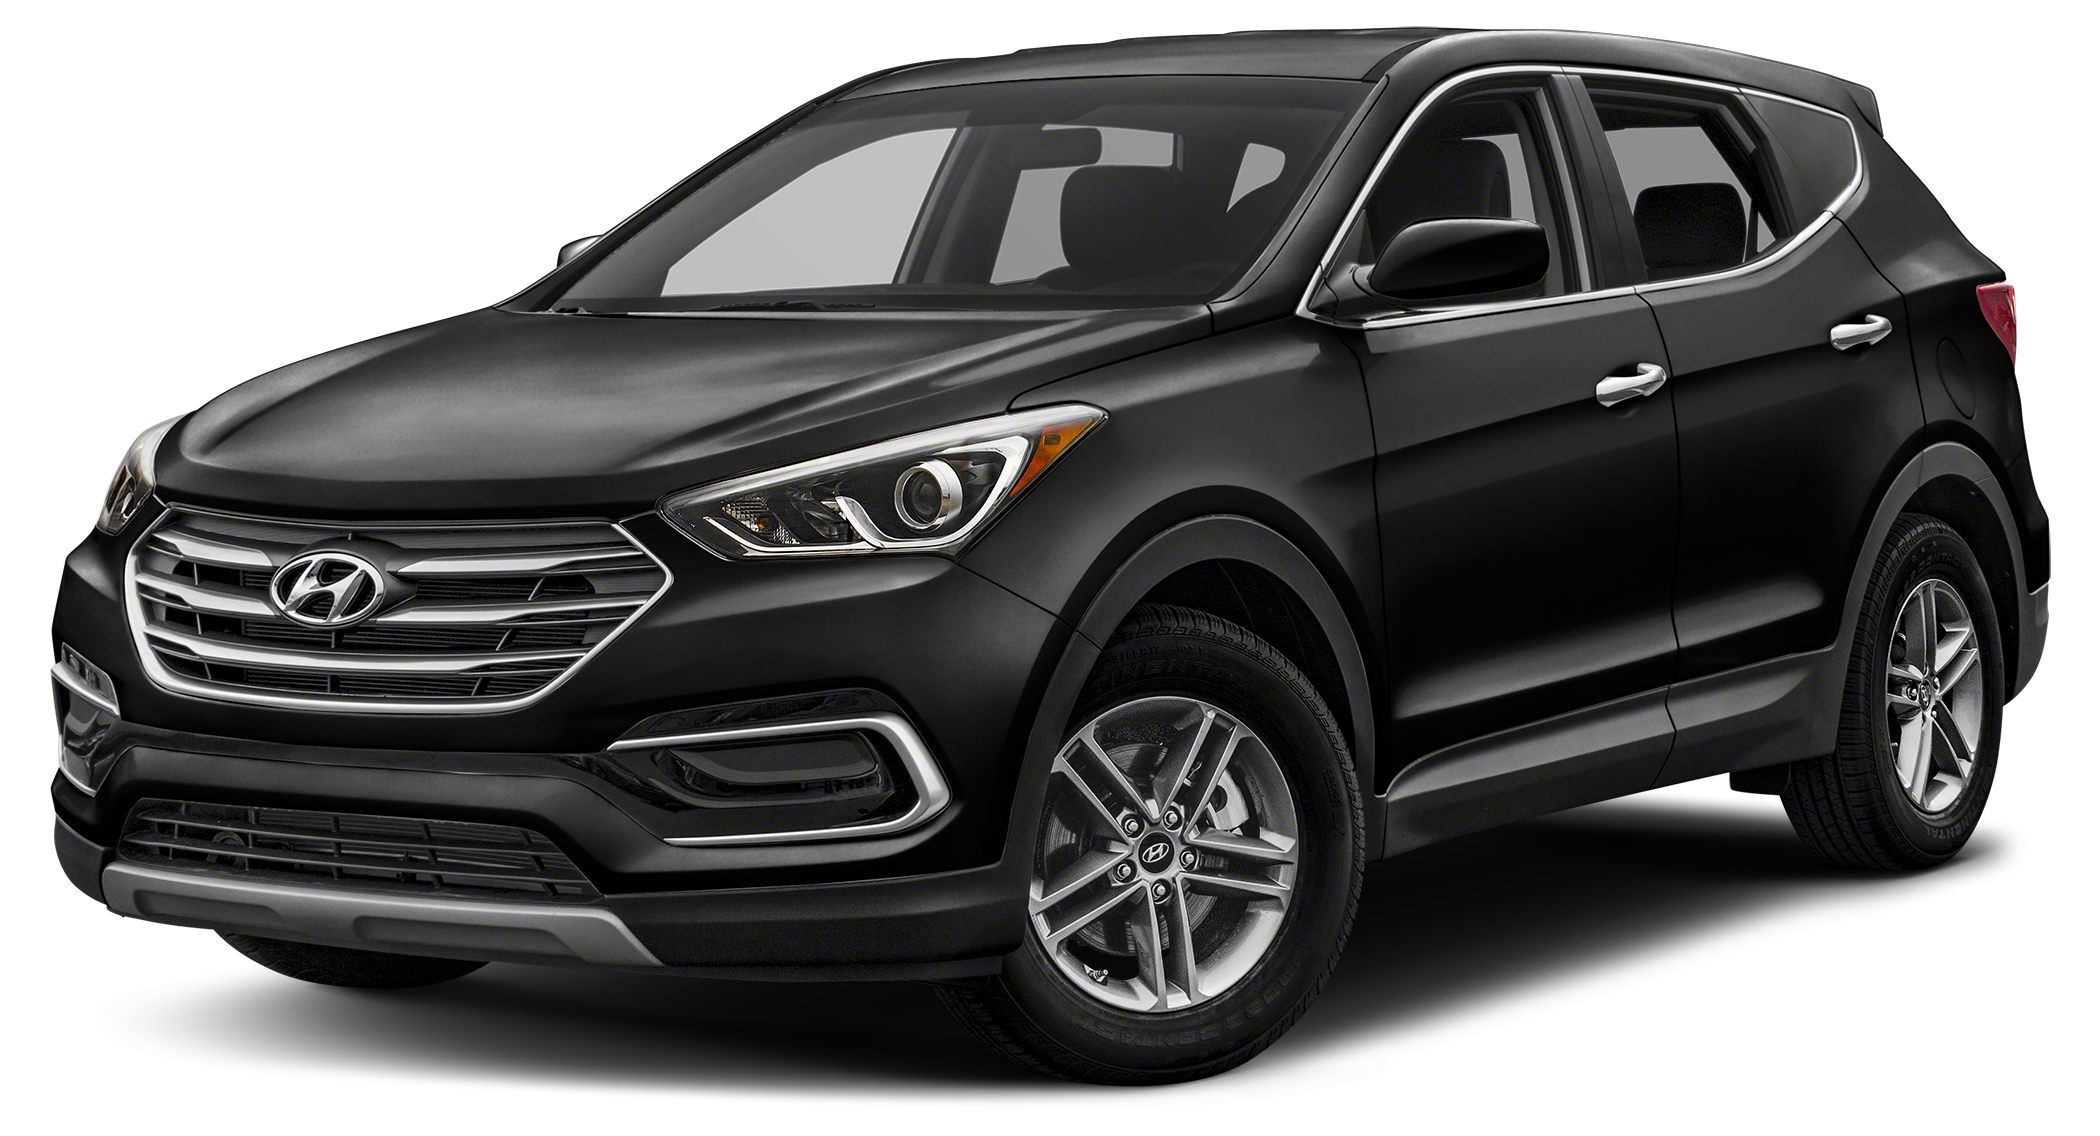 2018 Hyundai Santa Fe Sport 24 2018 Hyundai Santa Fe Sport 24 Base FWD 6-Speed Automatic with Sh